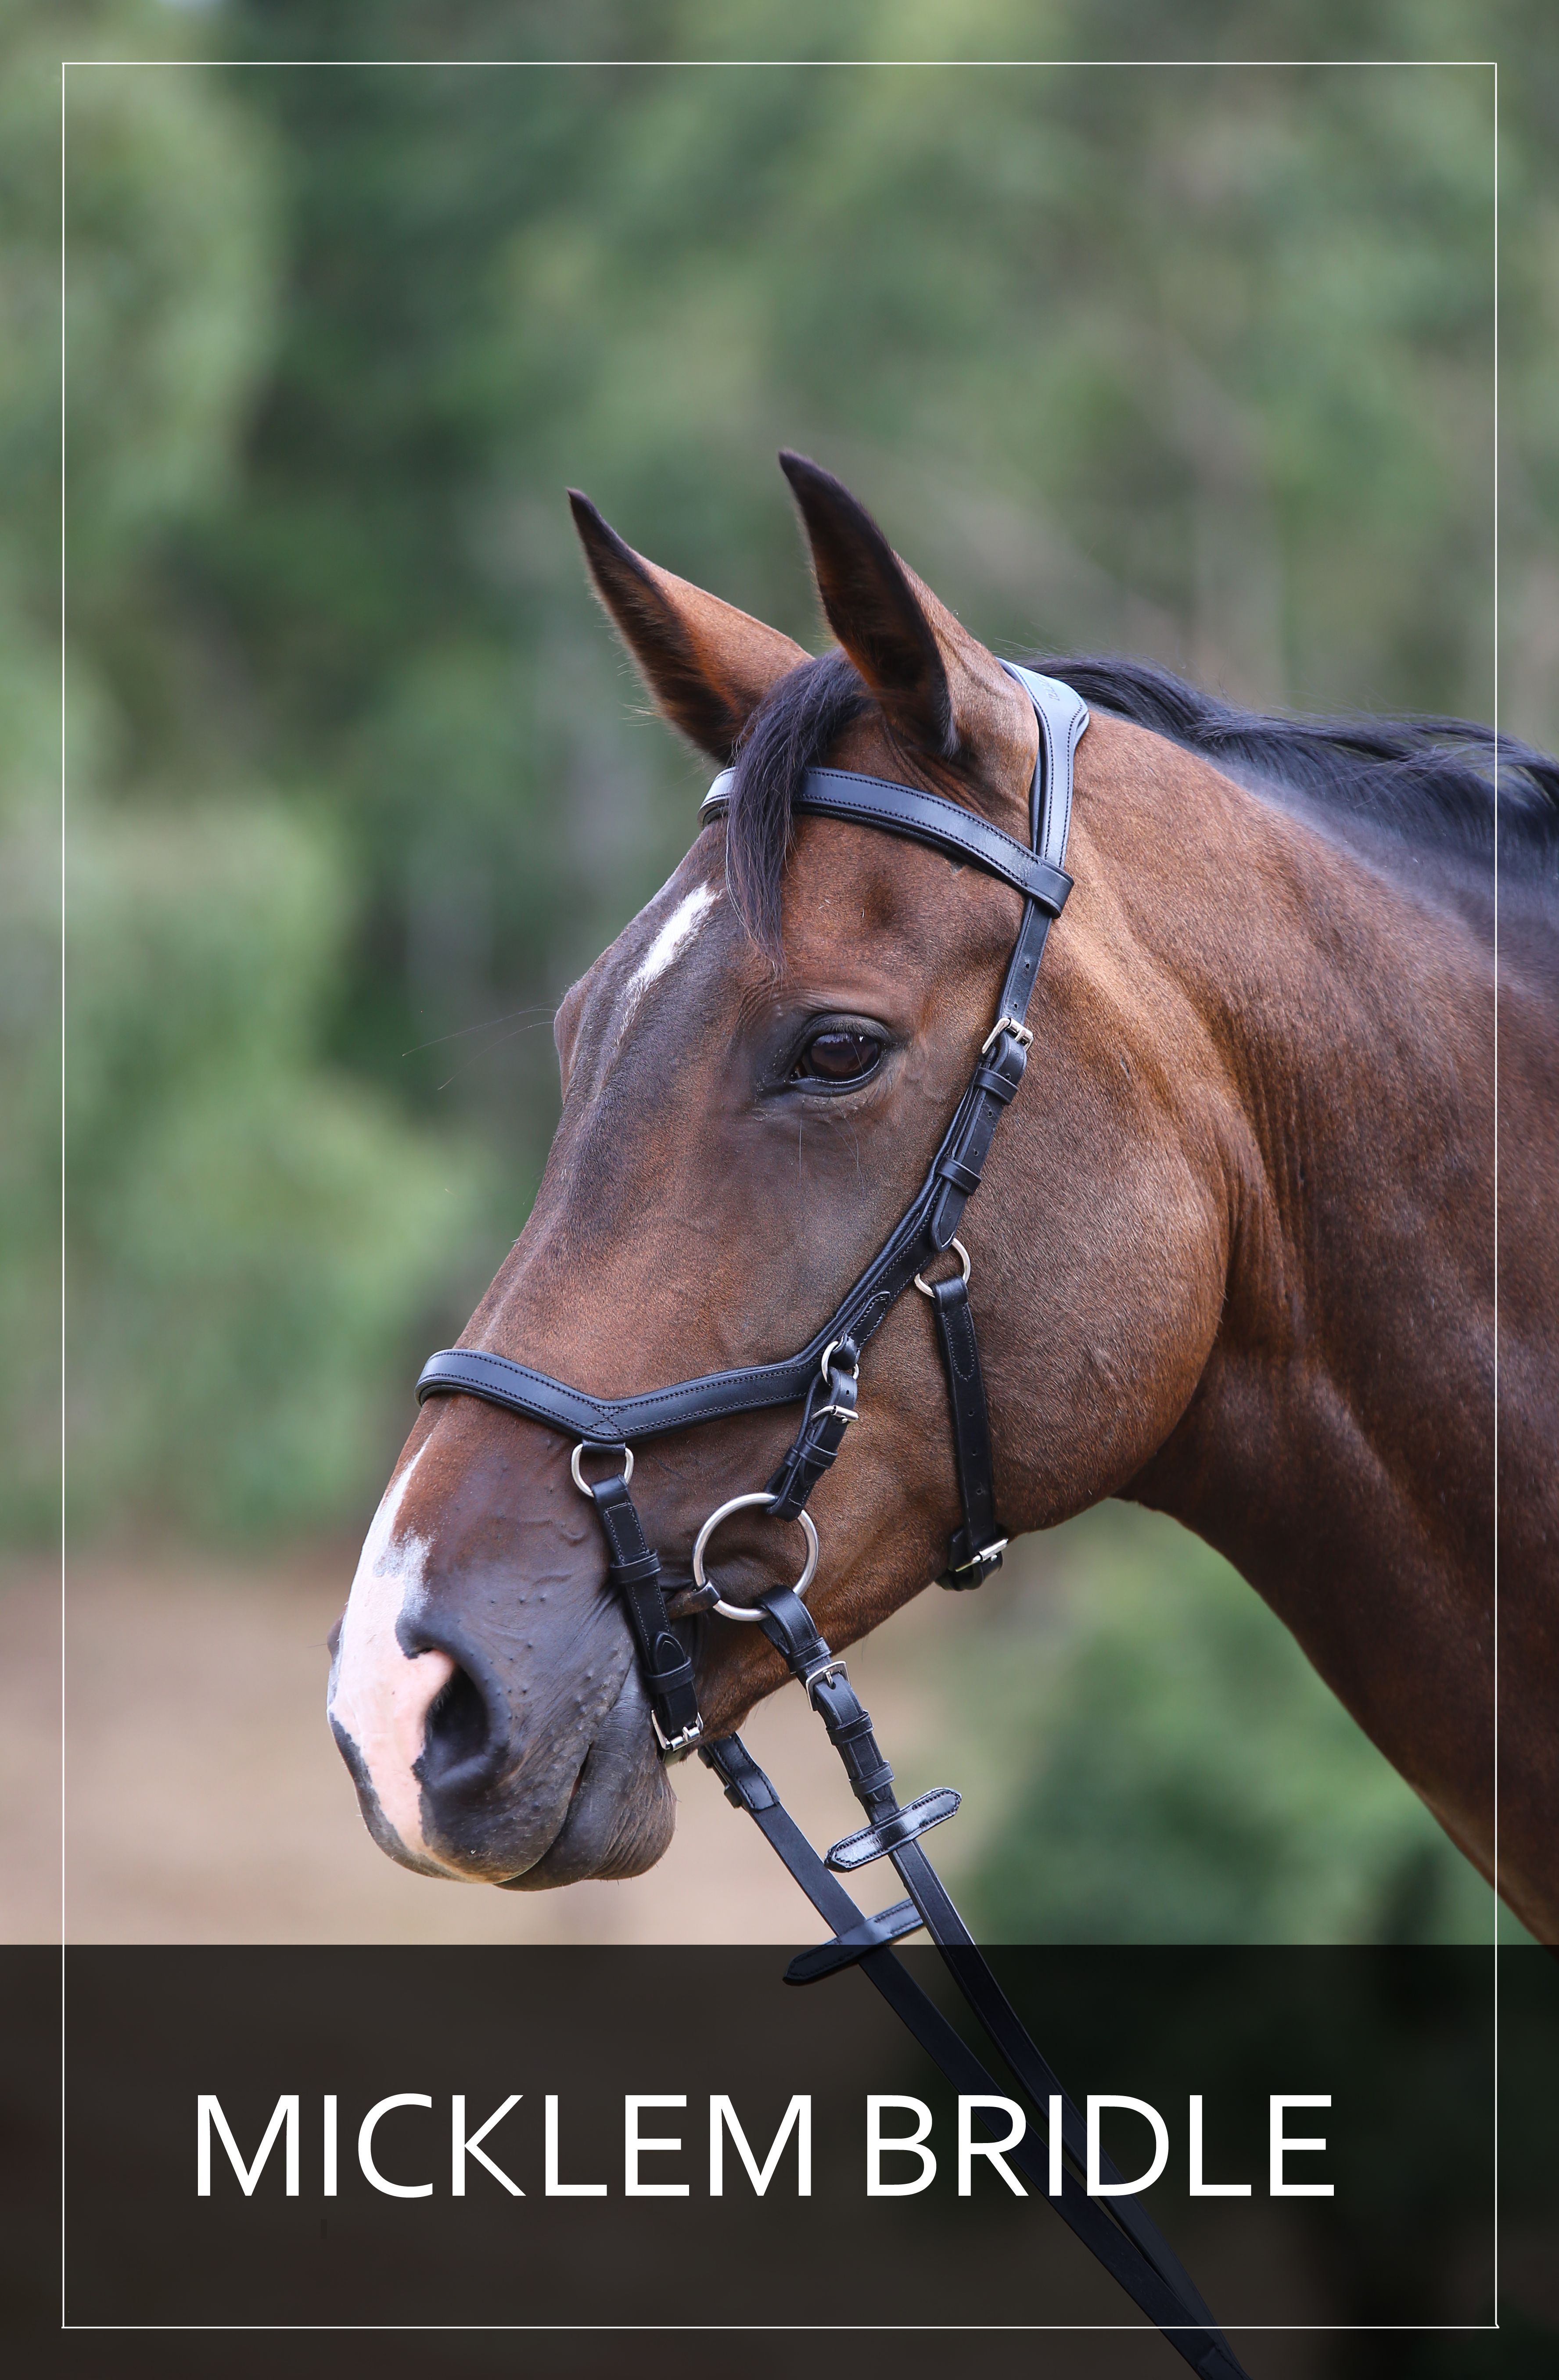 front-page-micklem-bridle.jpg